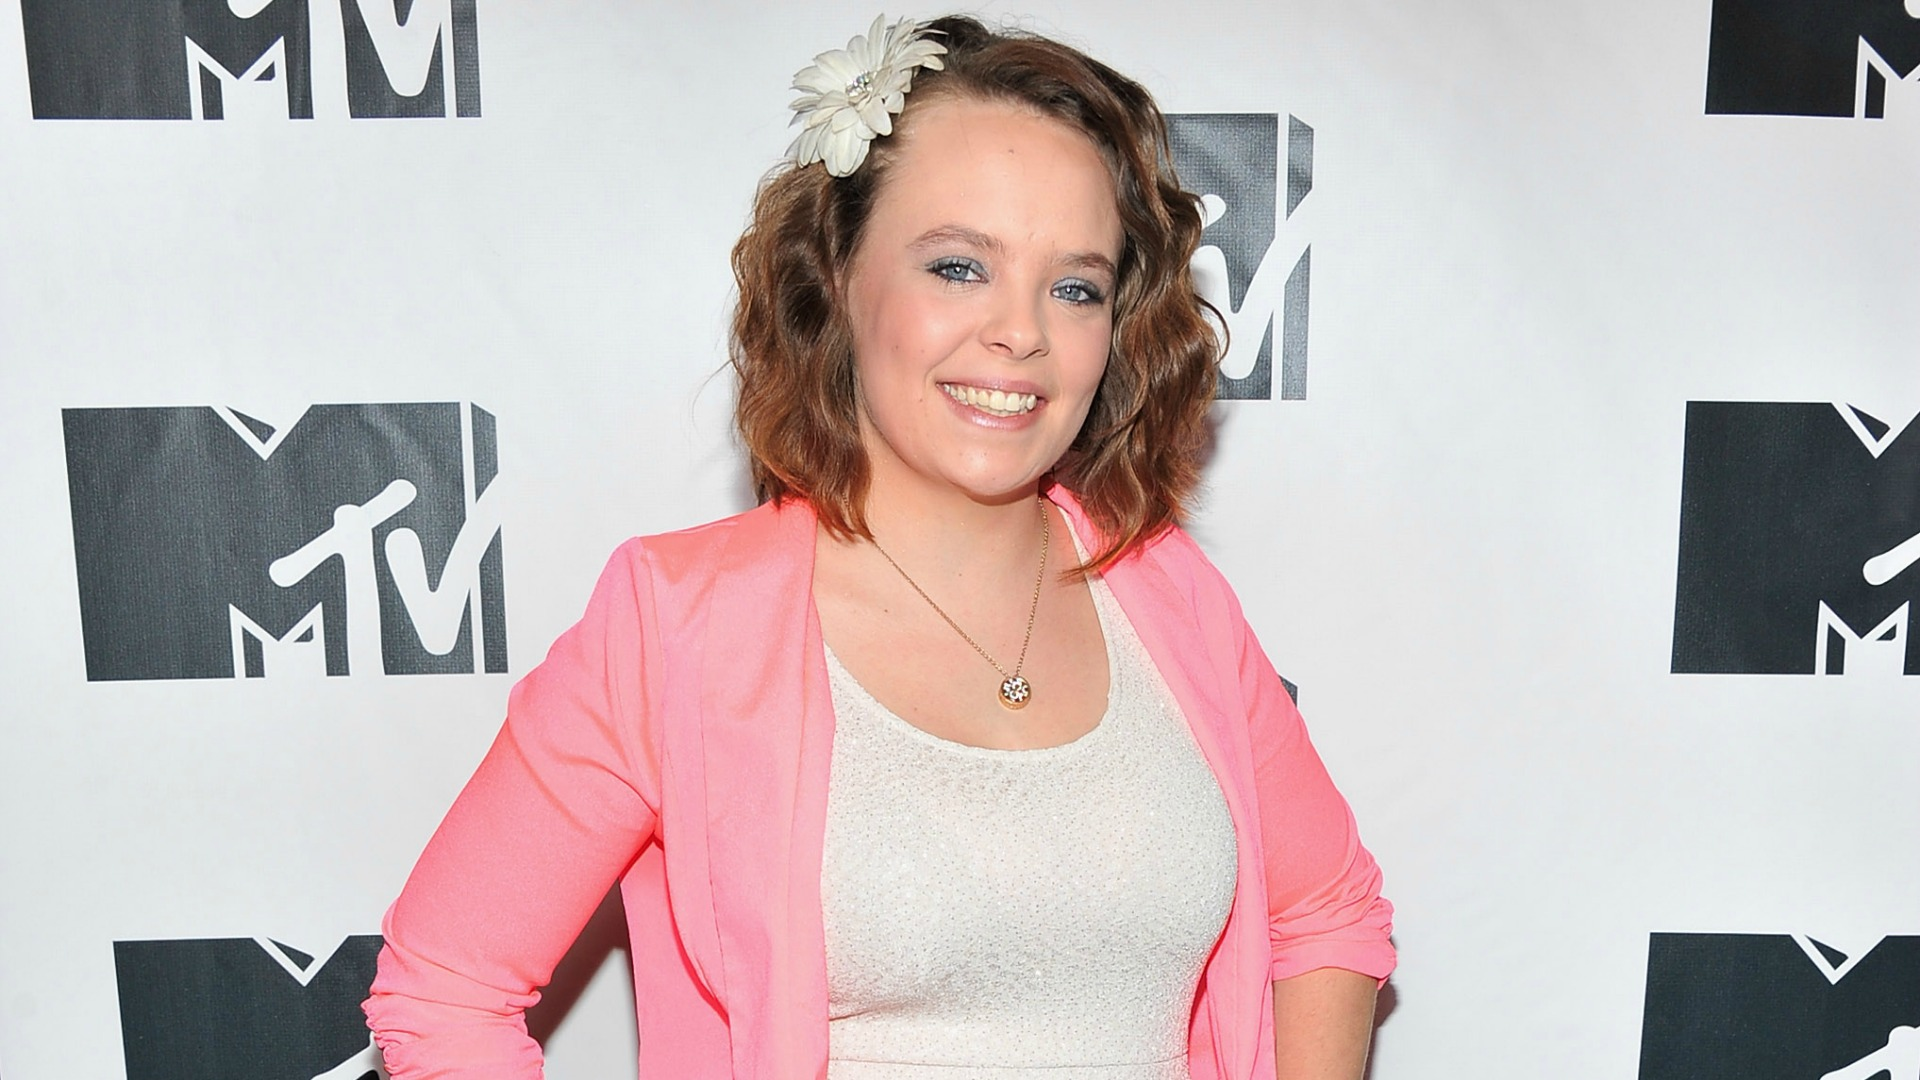 Catelynn Lowell is not opting for adoption for this pregnancy